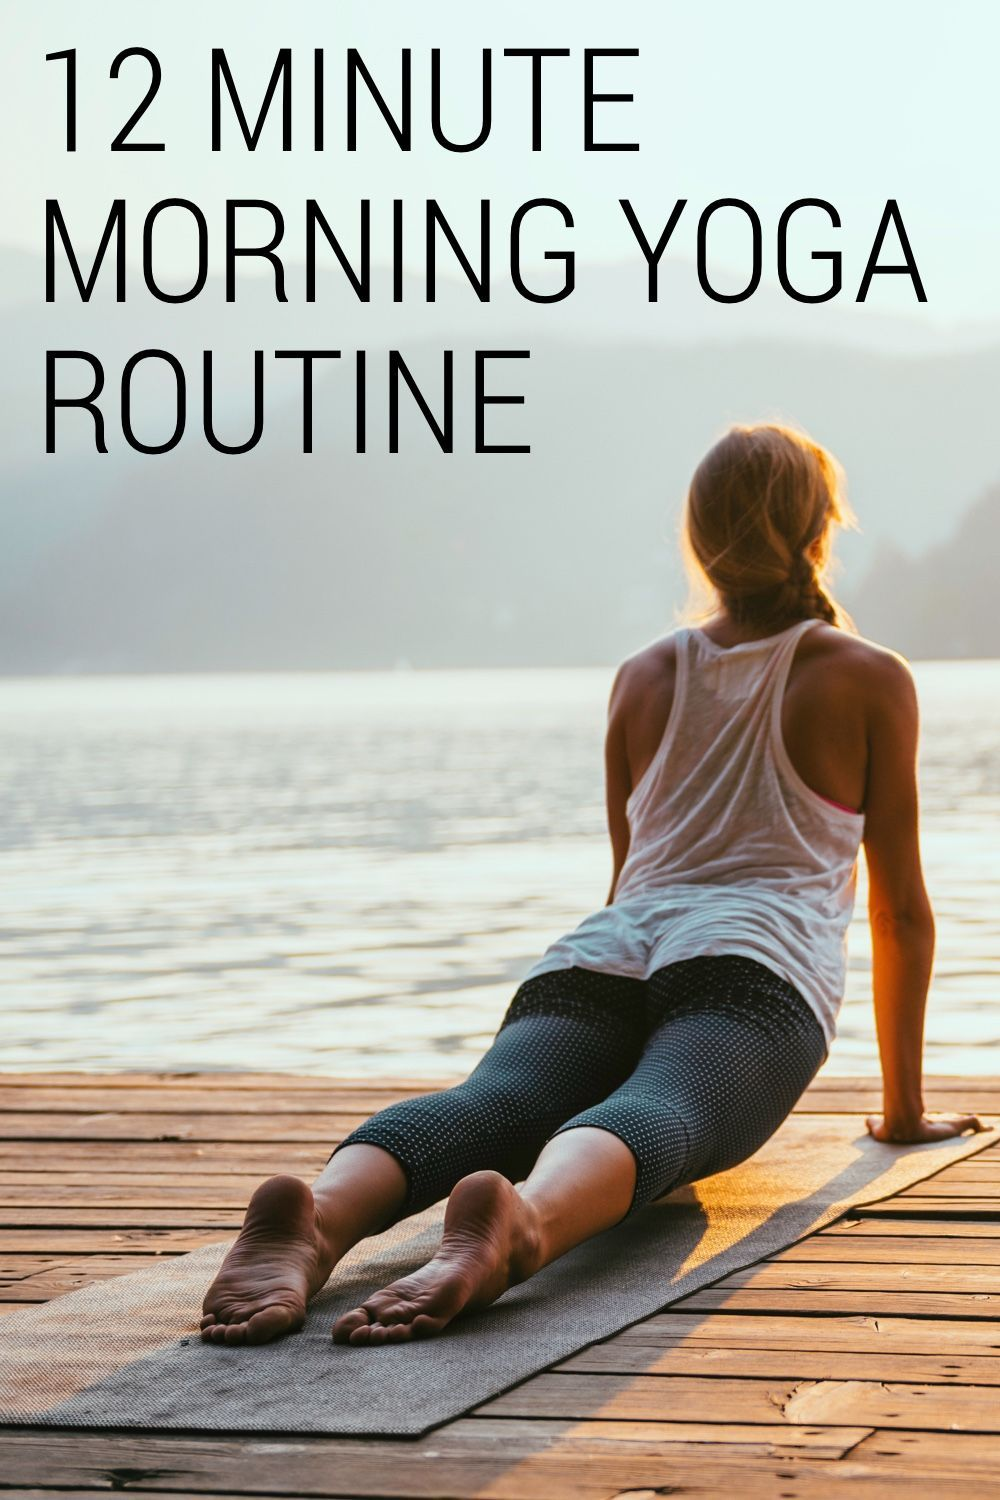 Here is a simple morning yoga routine that will start your day off right. This beginner morning yoga sequence is easy to do and can really freshen you up. Need morning yoga stretches? Start with this morning yoga ritual. #yoga #yogaworkout #yogasequence